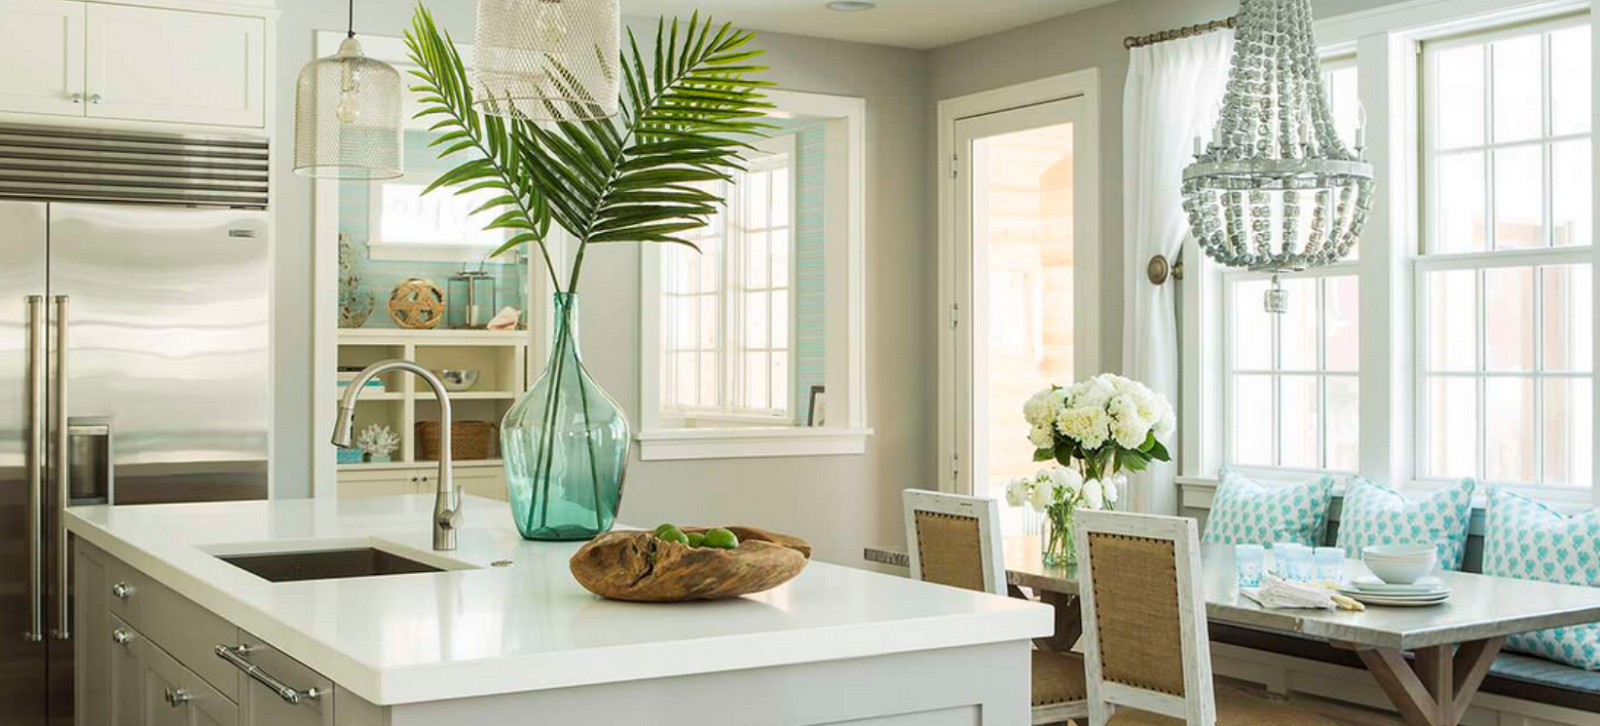 ... White Kitchen, If You Have A Good Stopping Point. Crown Molding Or Beam  Ceilings Often Solve This And Create A Solution For Where The Paint Can  Stop.